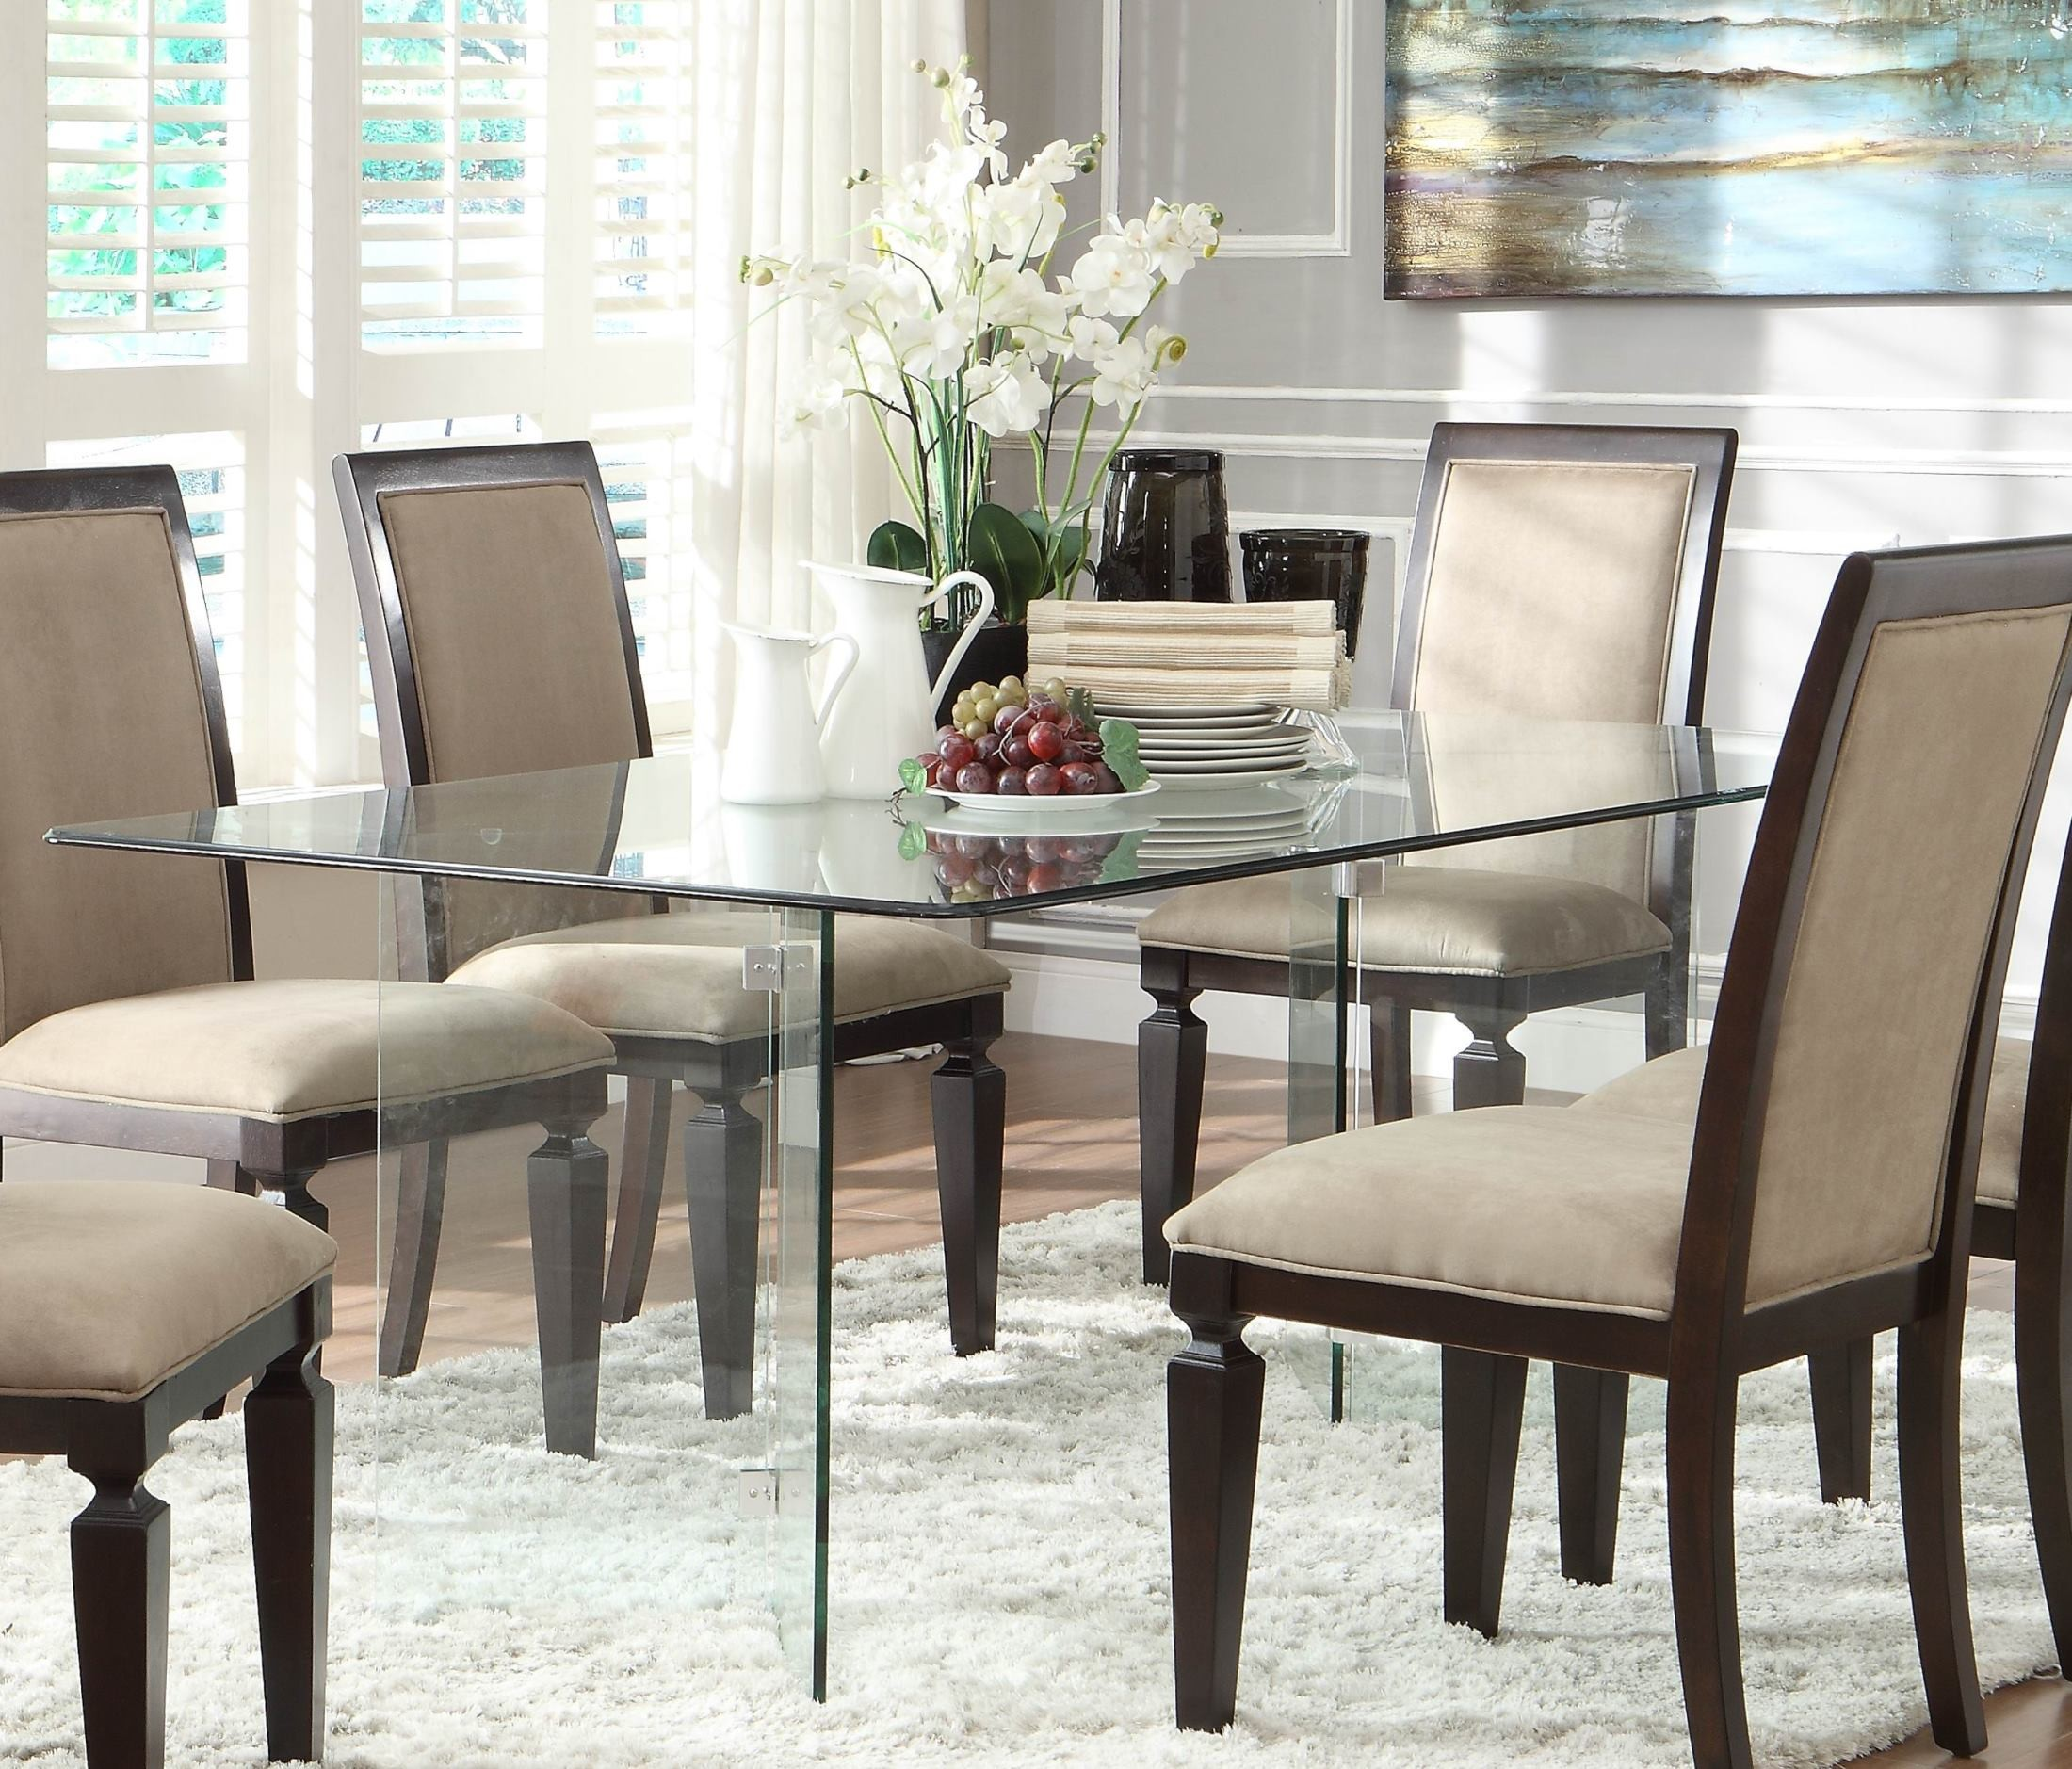 Glass Dining Furniture: Alouette Rectangular Glass Dining Table From Homelegance